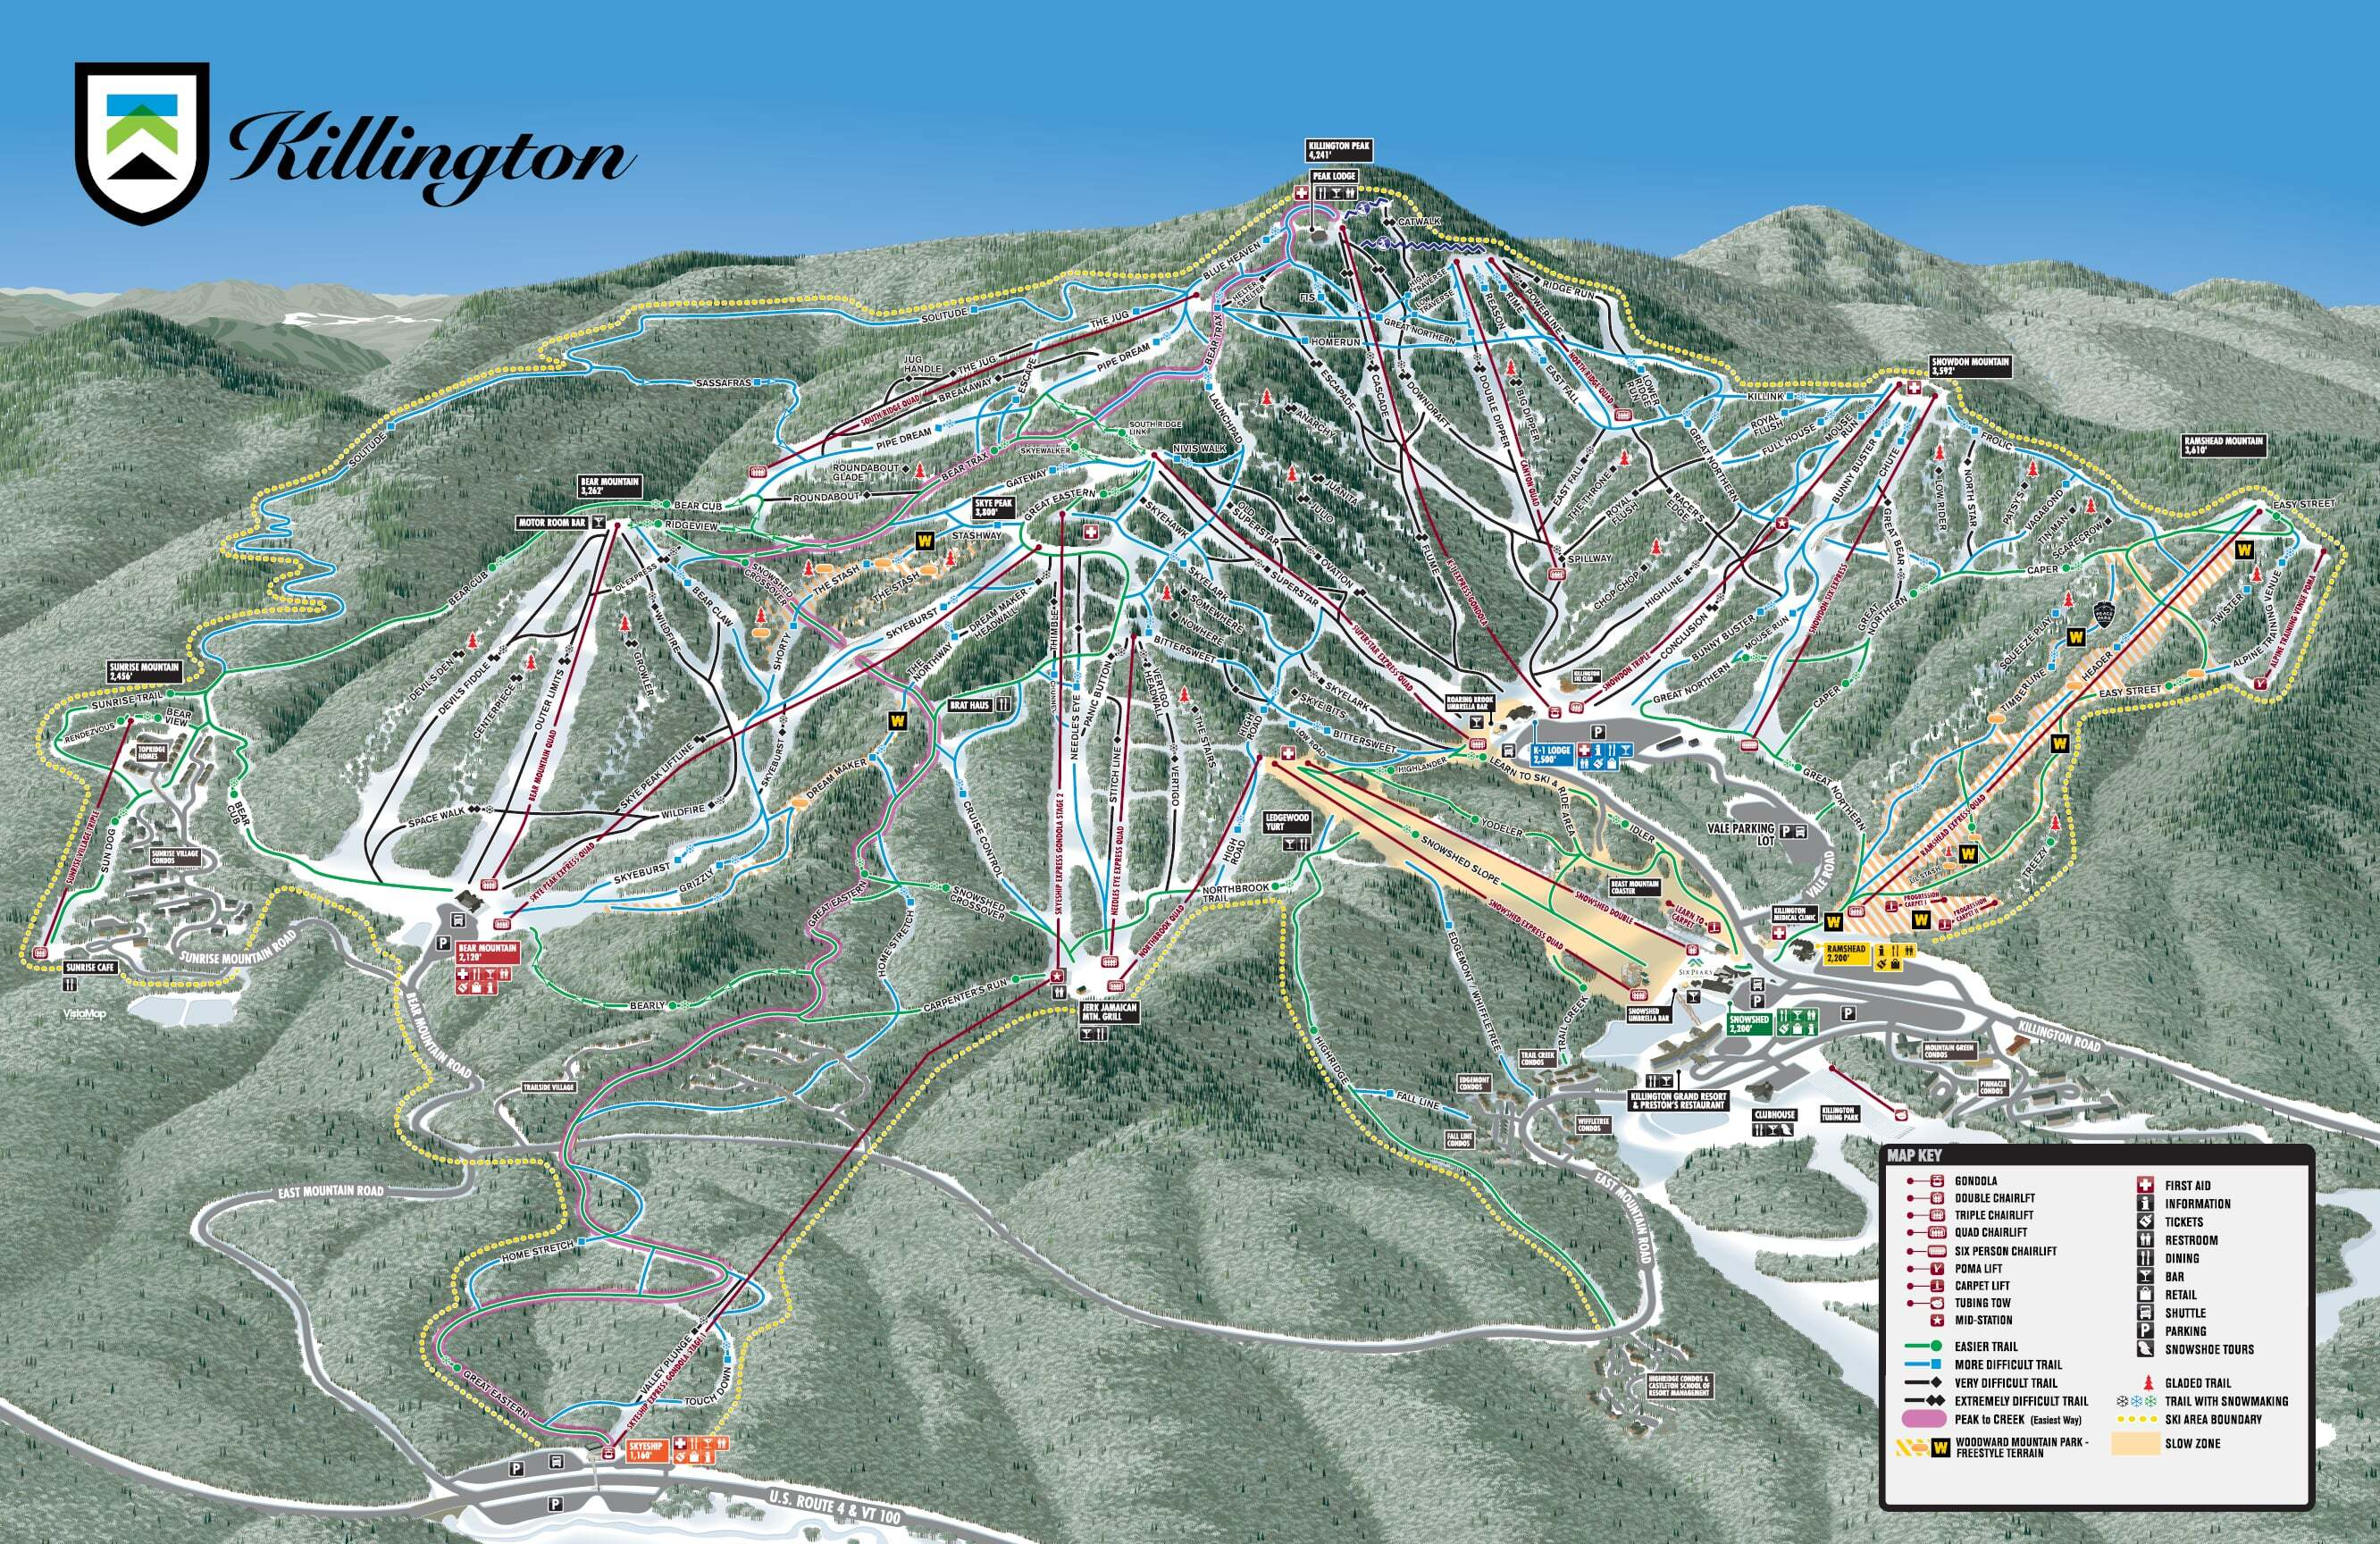 Killington Ski Resort Guide Location Map & Killington ski holiday